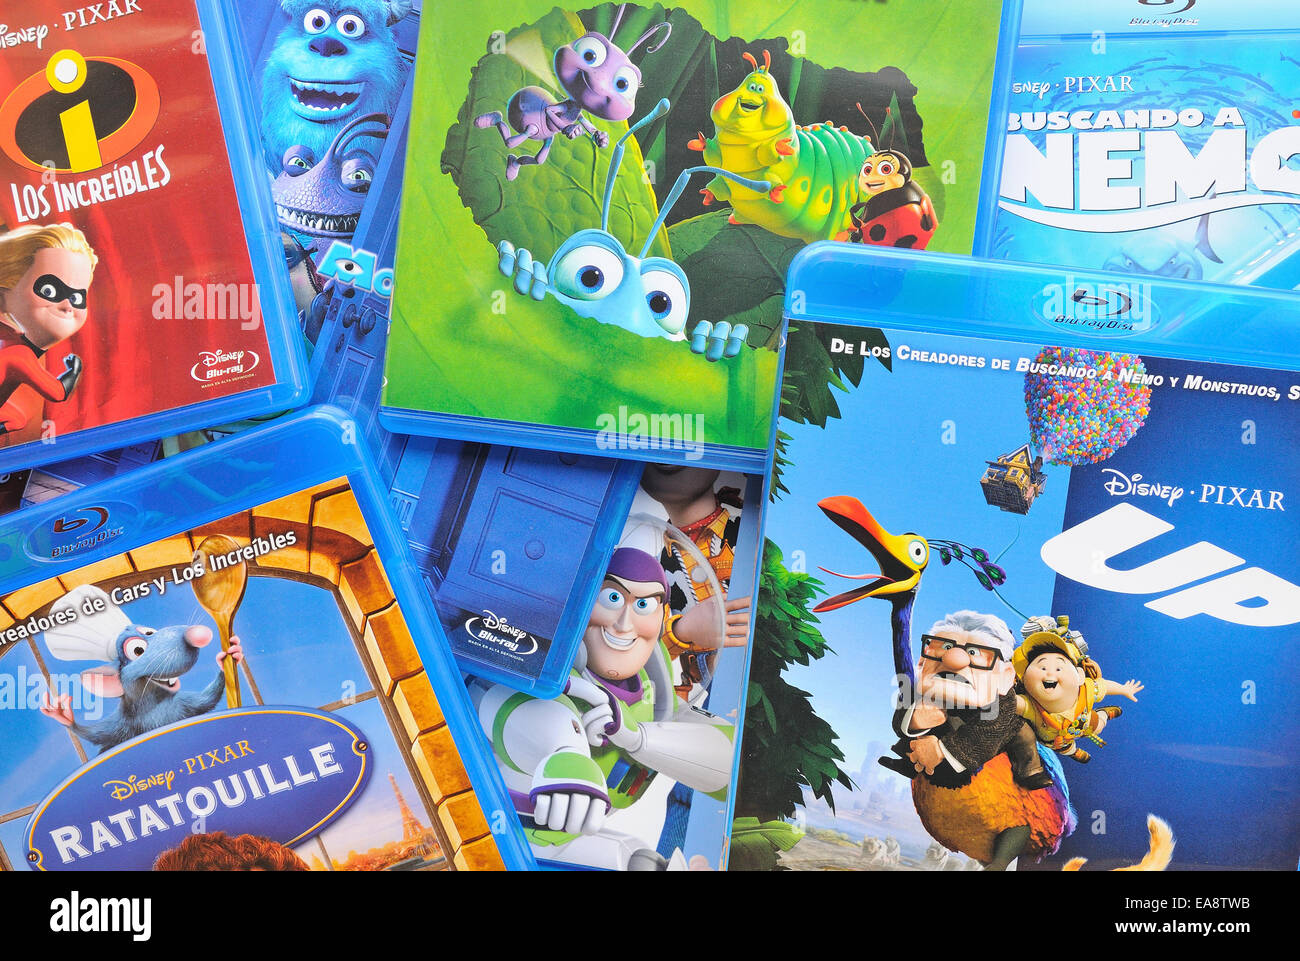 BARCELONA, SPAIN - APR 18, 2014: A collection of films by Disney Pixar Animation Studios on Blu-ray. - Stock Image